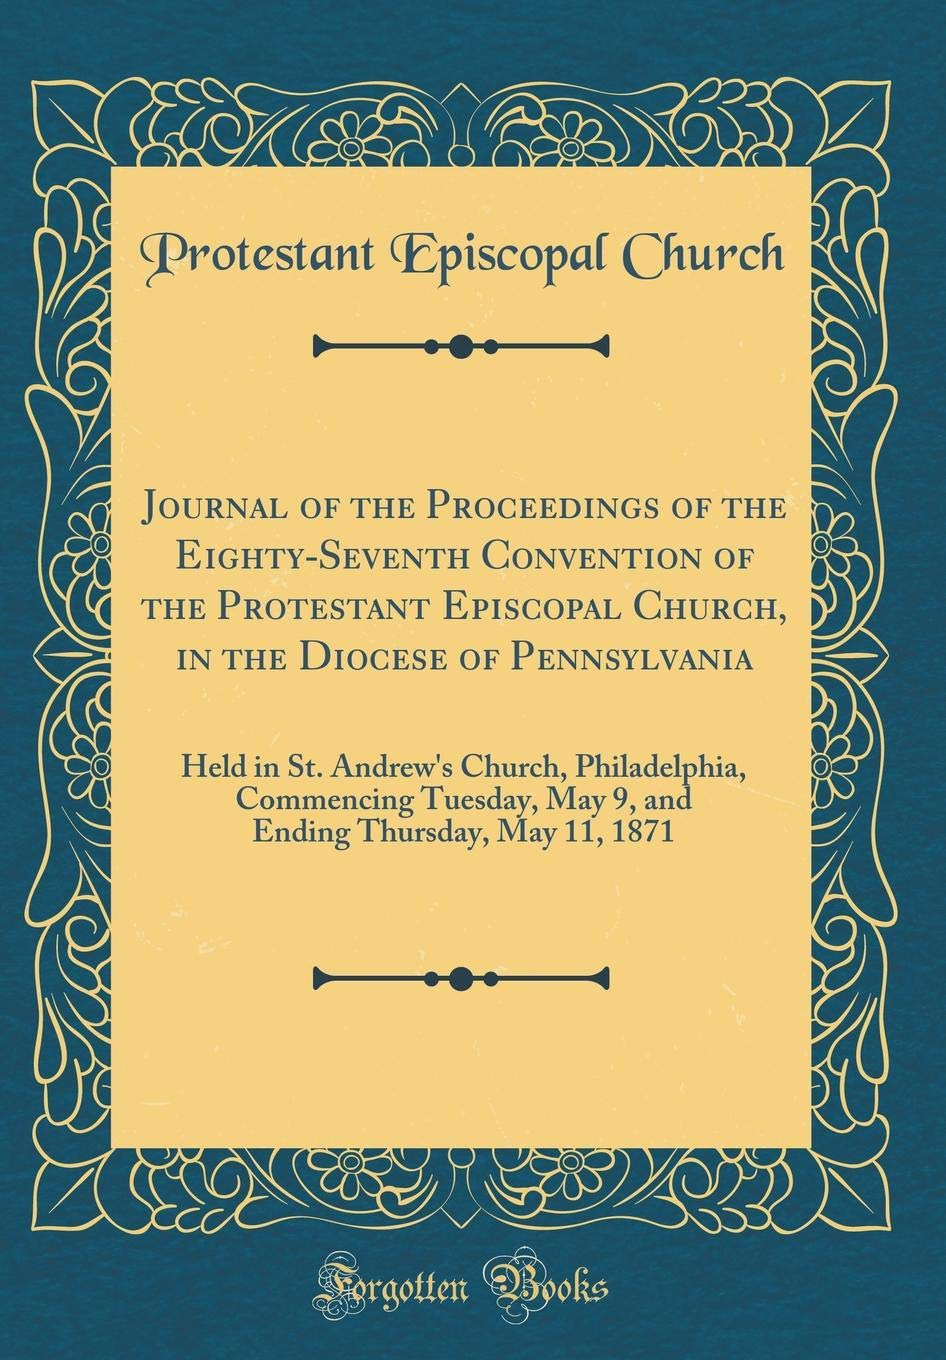 Read Online Journal of the Proceedings of the Eighty-Seventh Convention of the Protestant Episcopal Church, in the Diocese of Pennsylvania: Held in St. Andrew's ... Thursday, May 11, 1871 (Classic Reprint) PDF